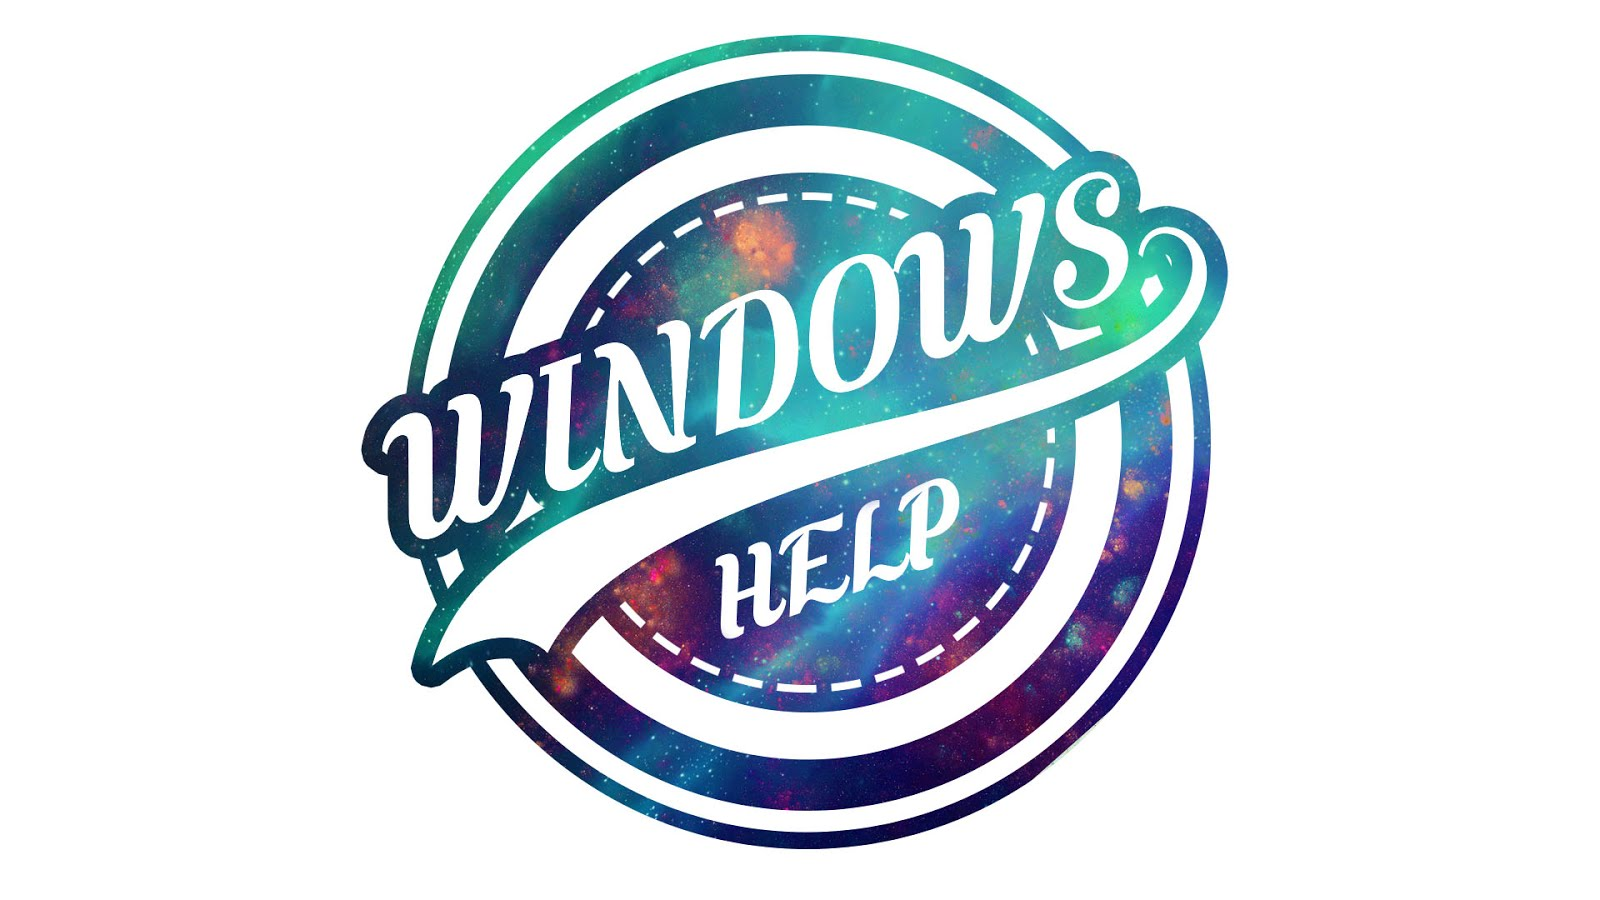 The Windows Help